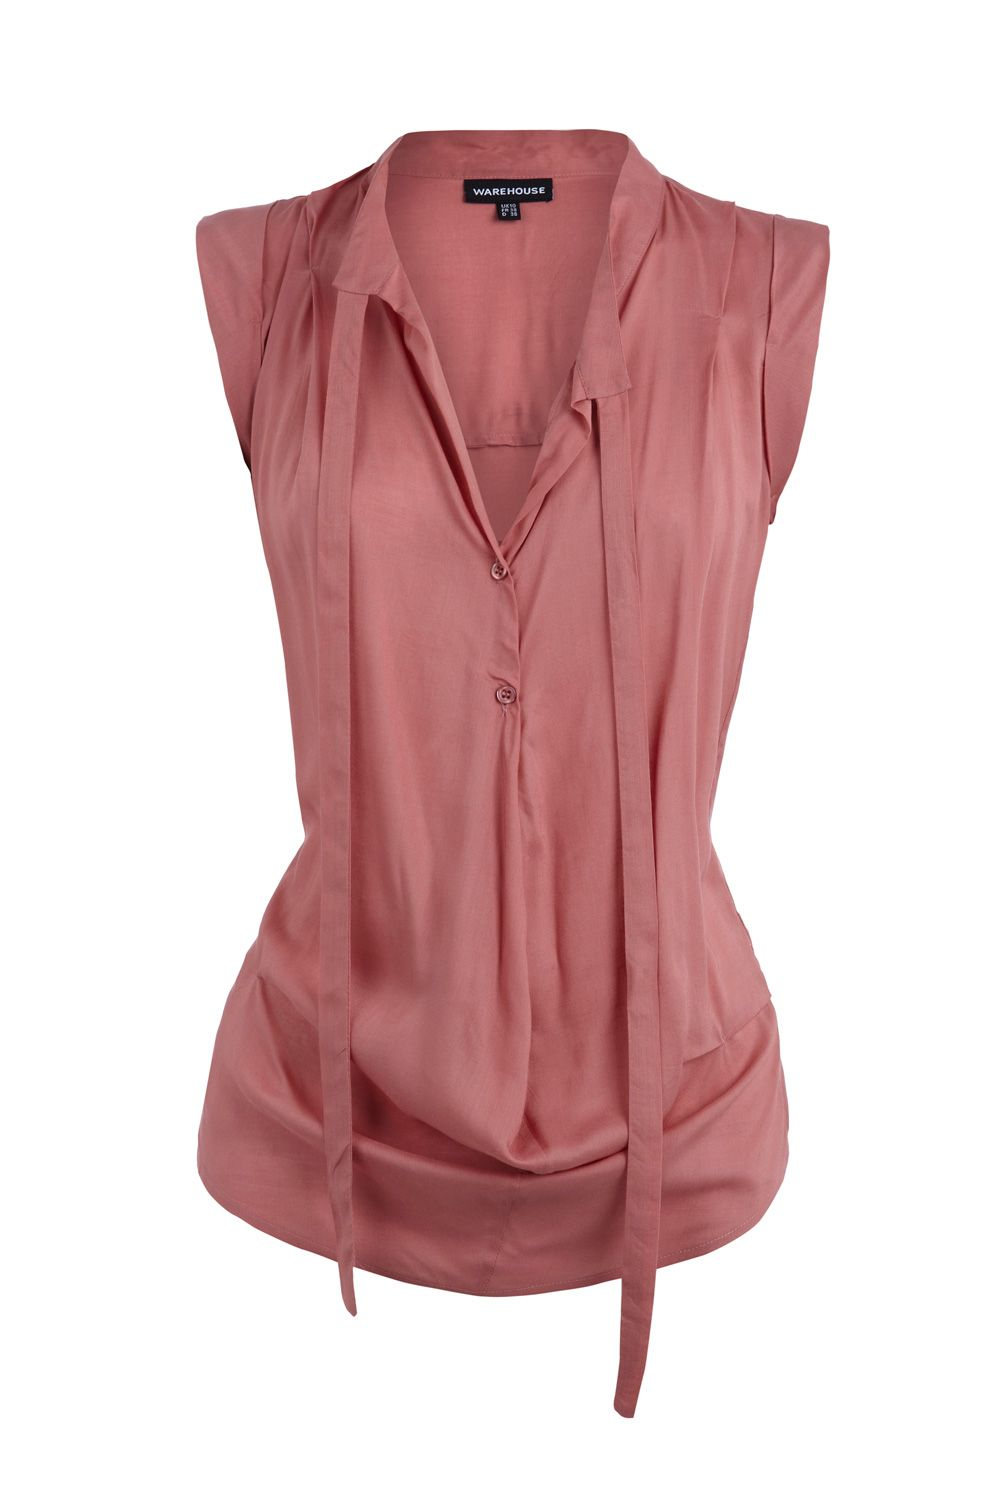 Warehouse Drape front blouse - Pink 16,16 product image